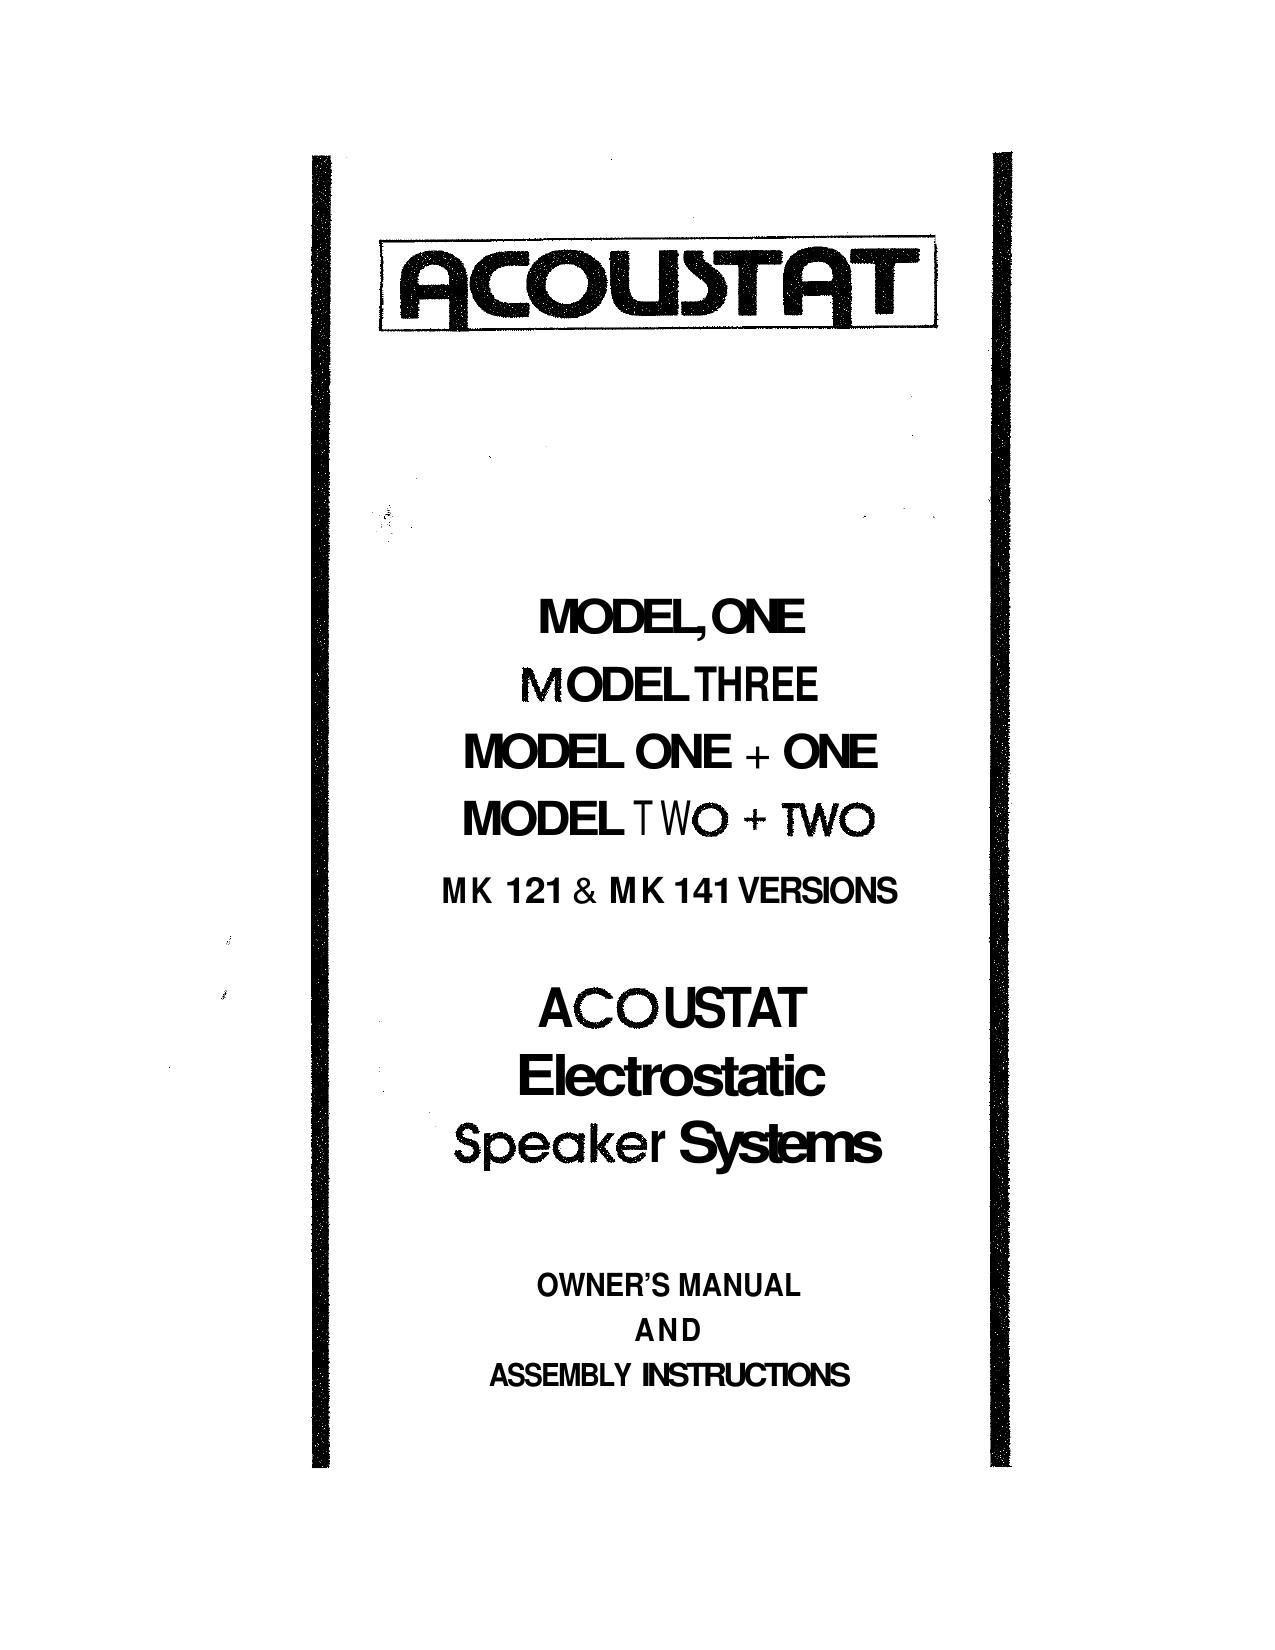 Acoustat Model 1.1 Owners Manual